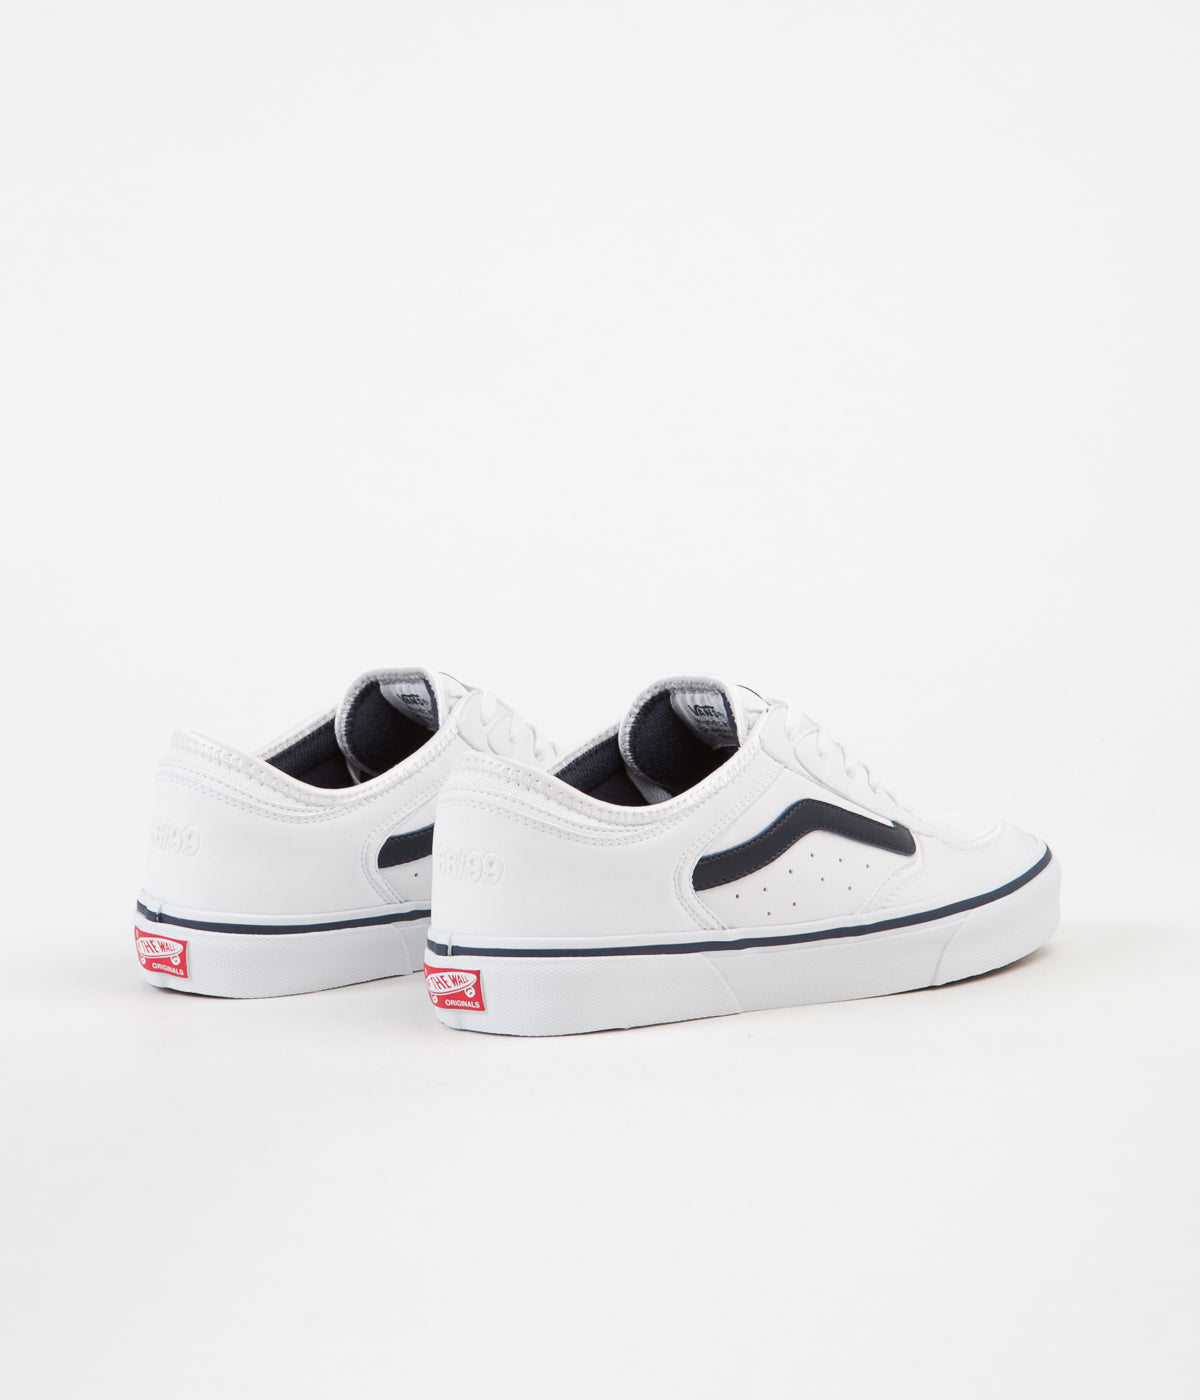 Vans Rowley Classic LX Shoes - White / Navy